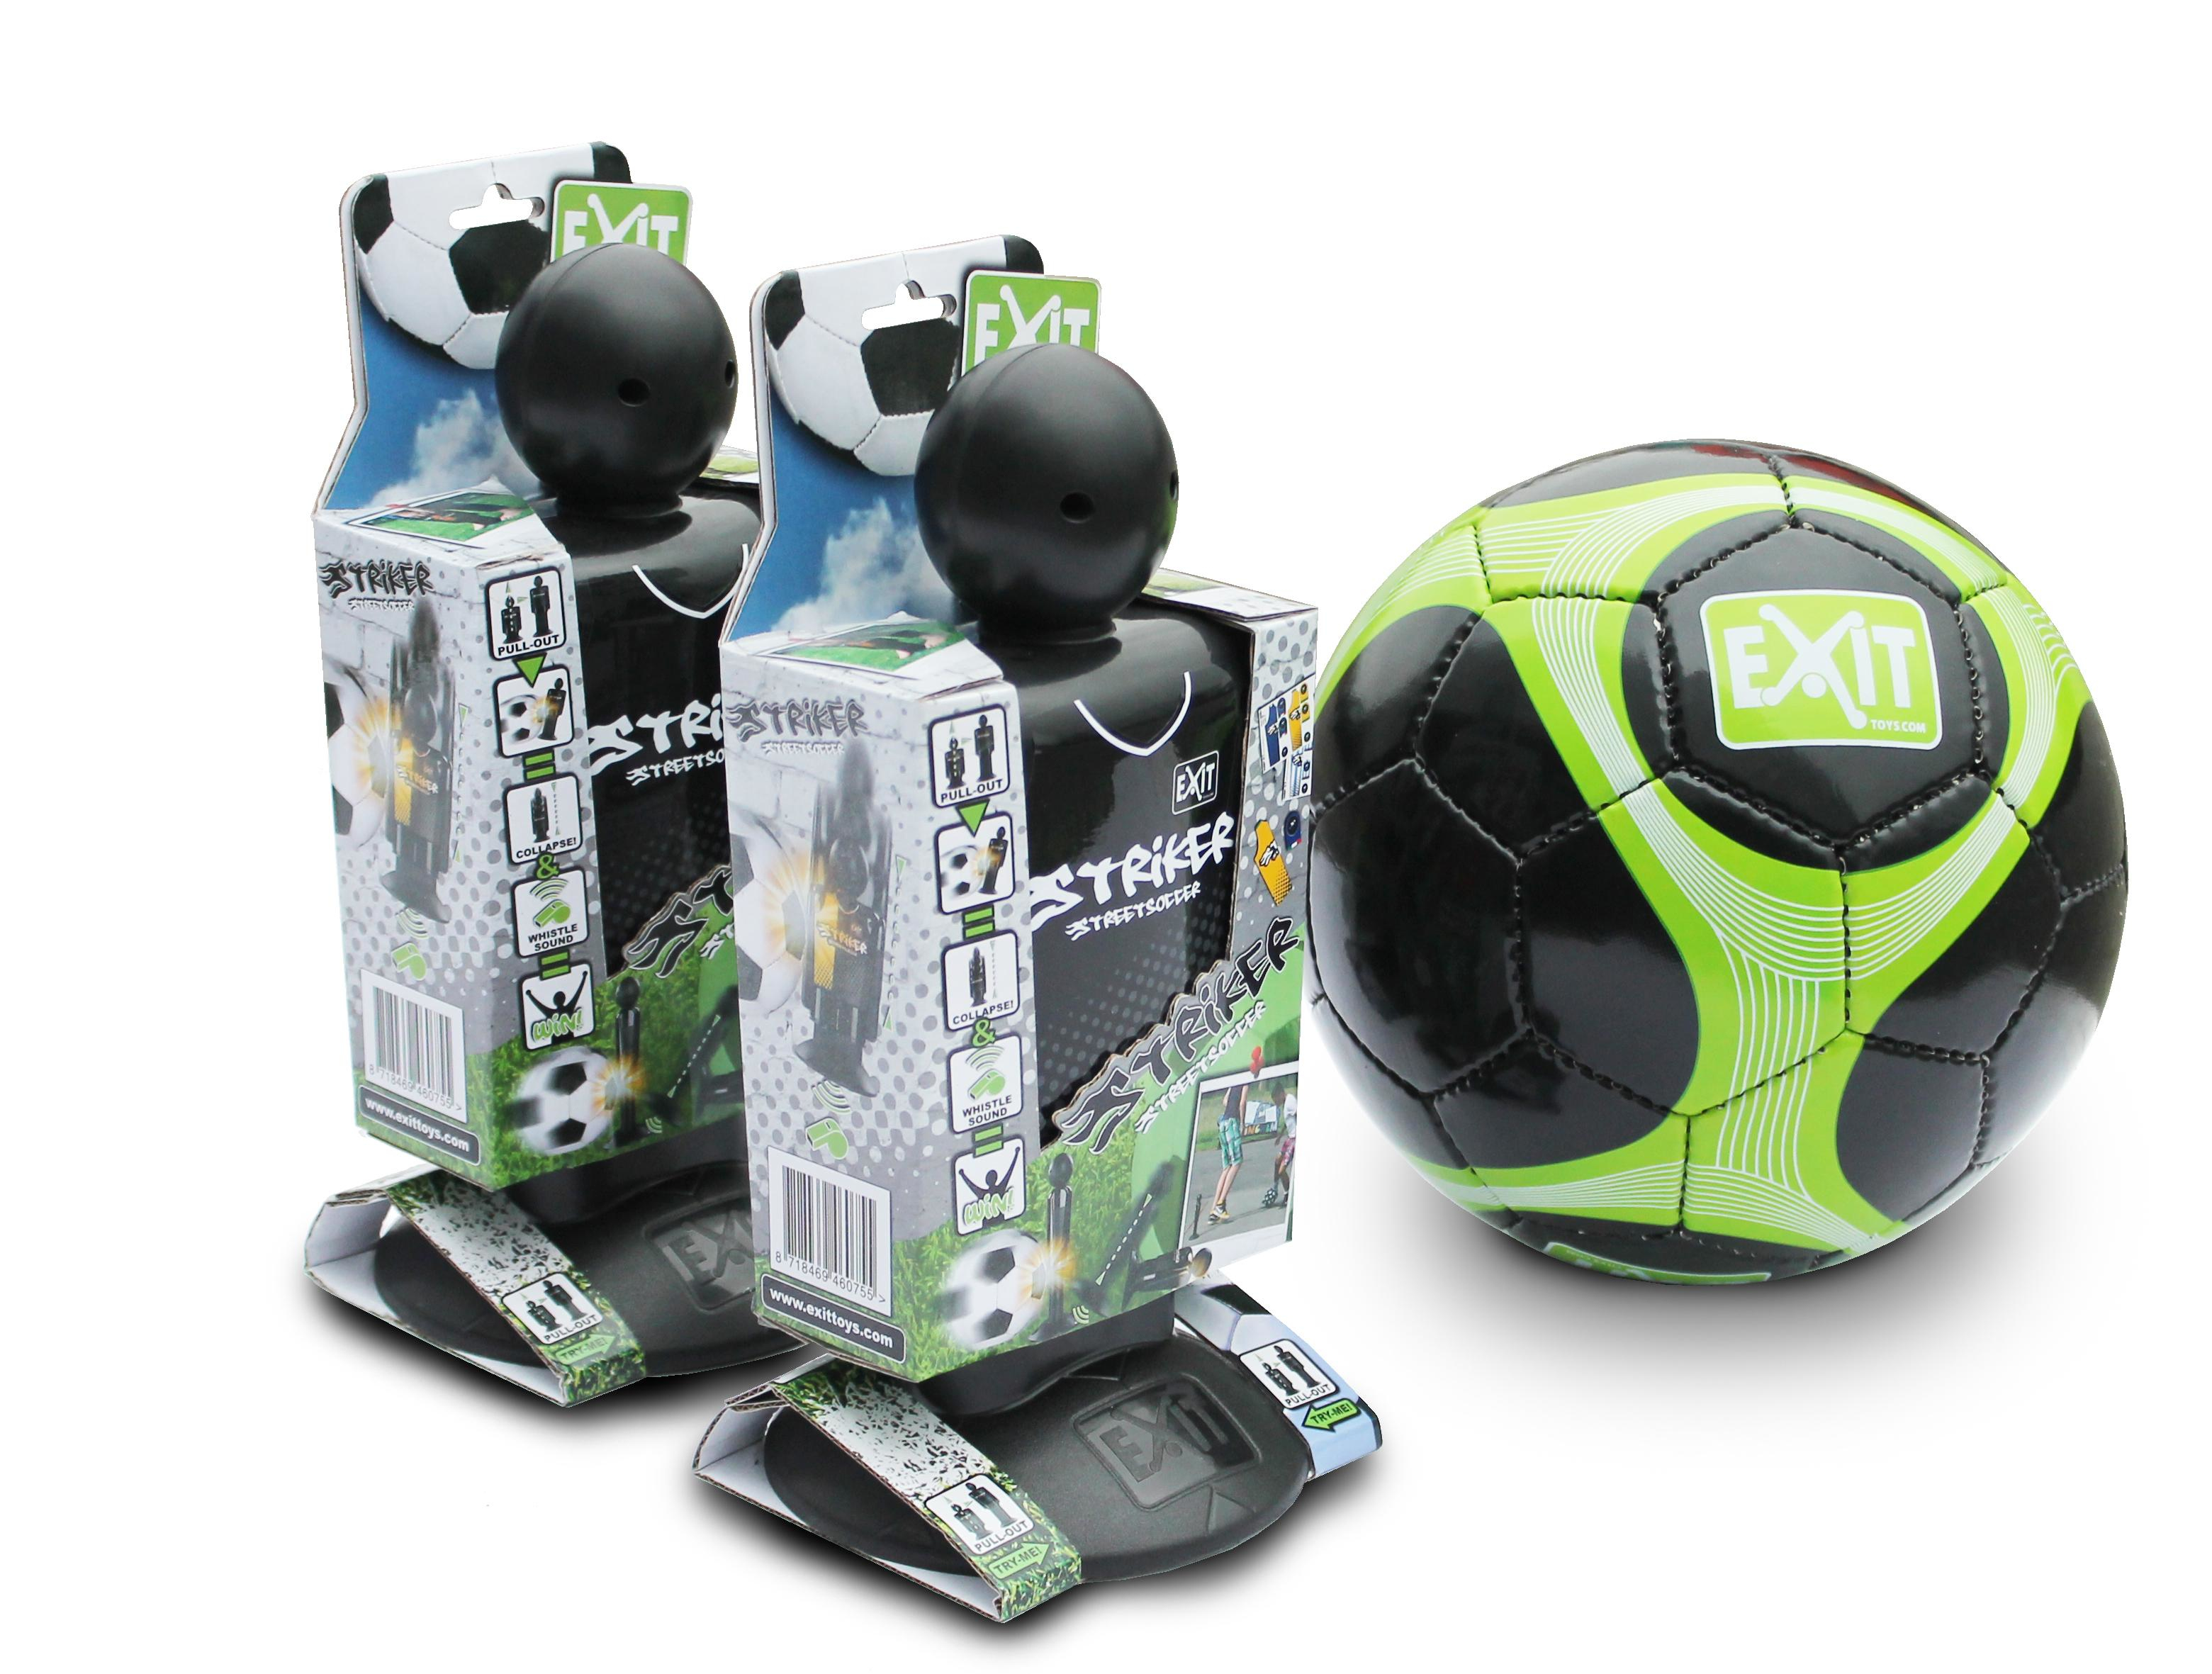 EXIT Striker Streetsoccer - Set of 2 + Ball Attaccante per calcio da strada